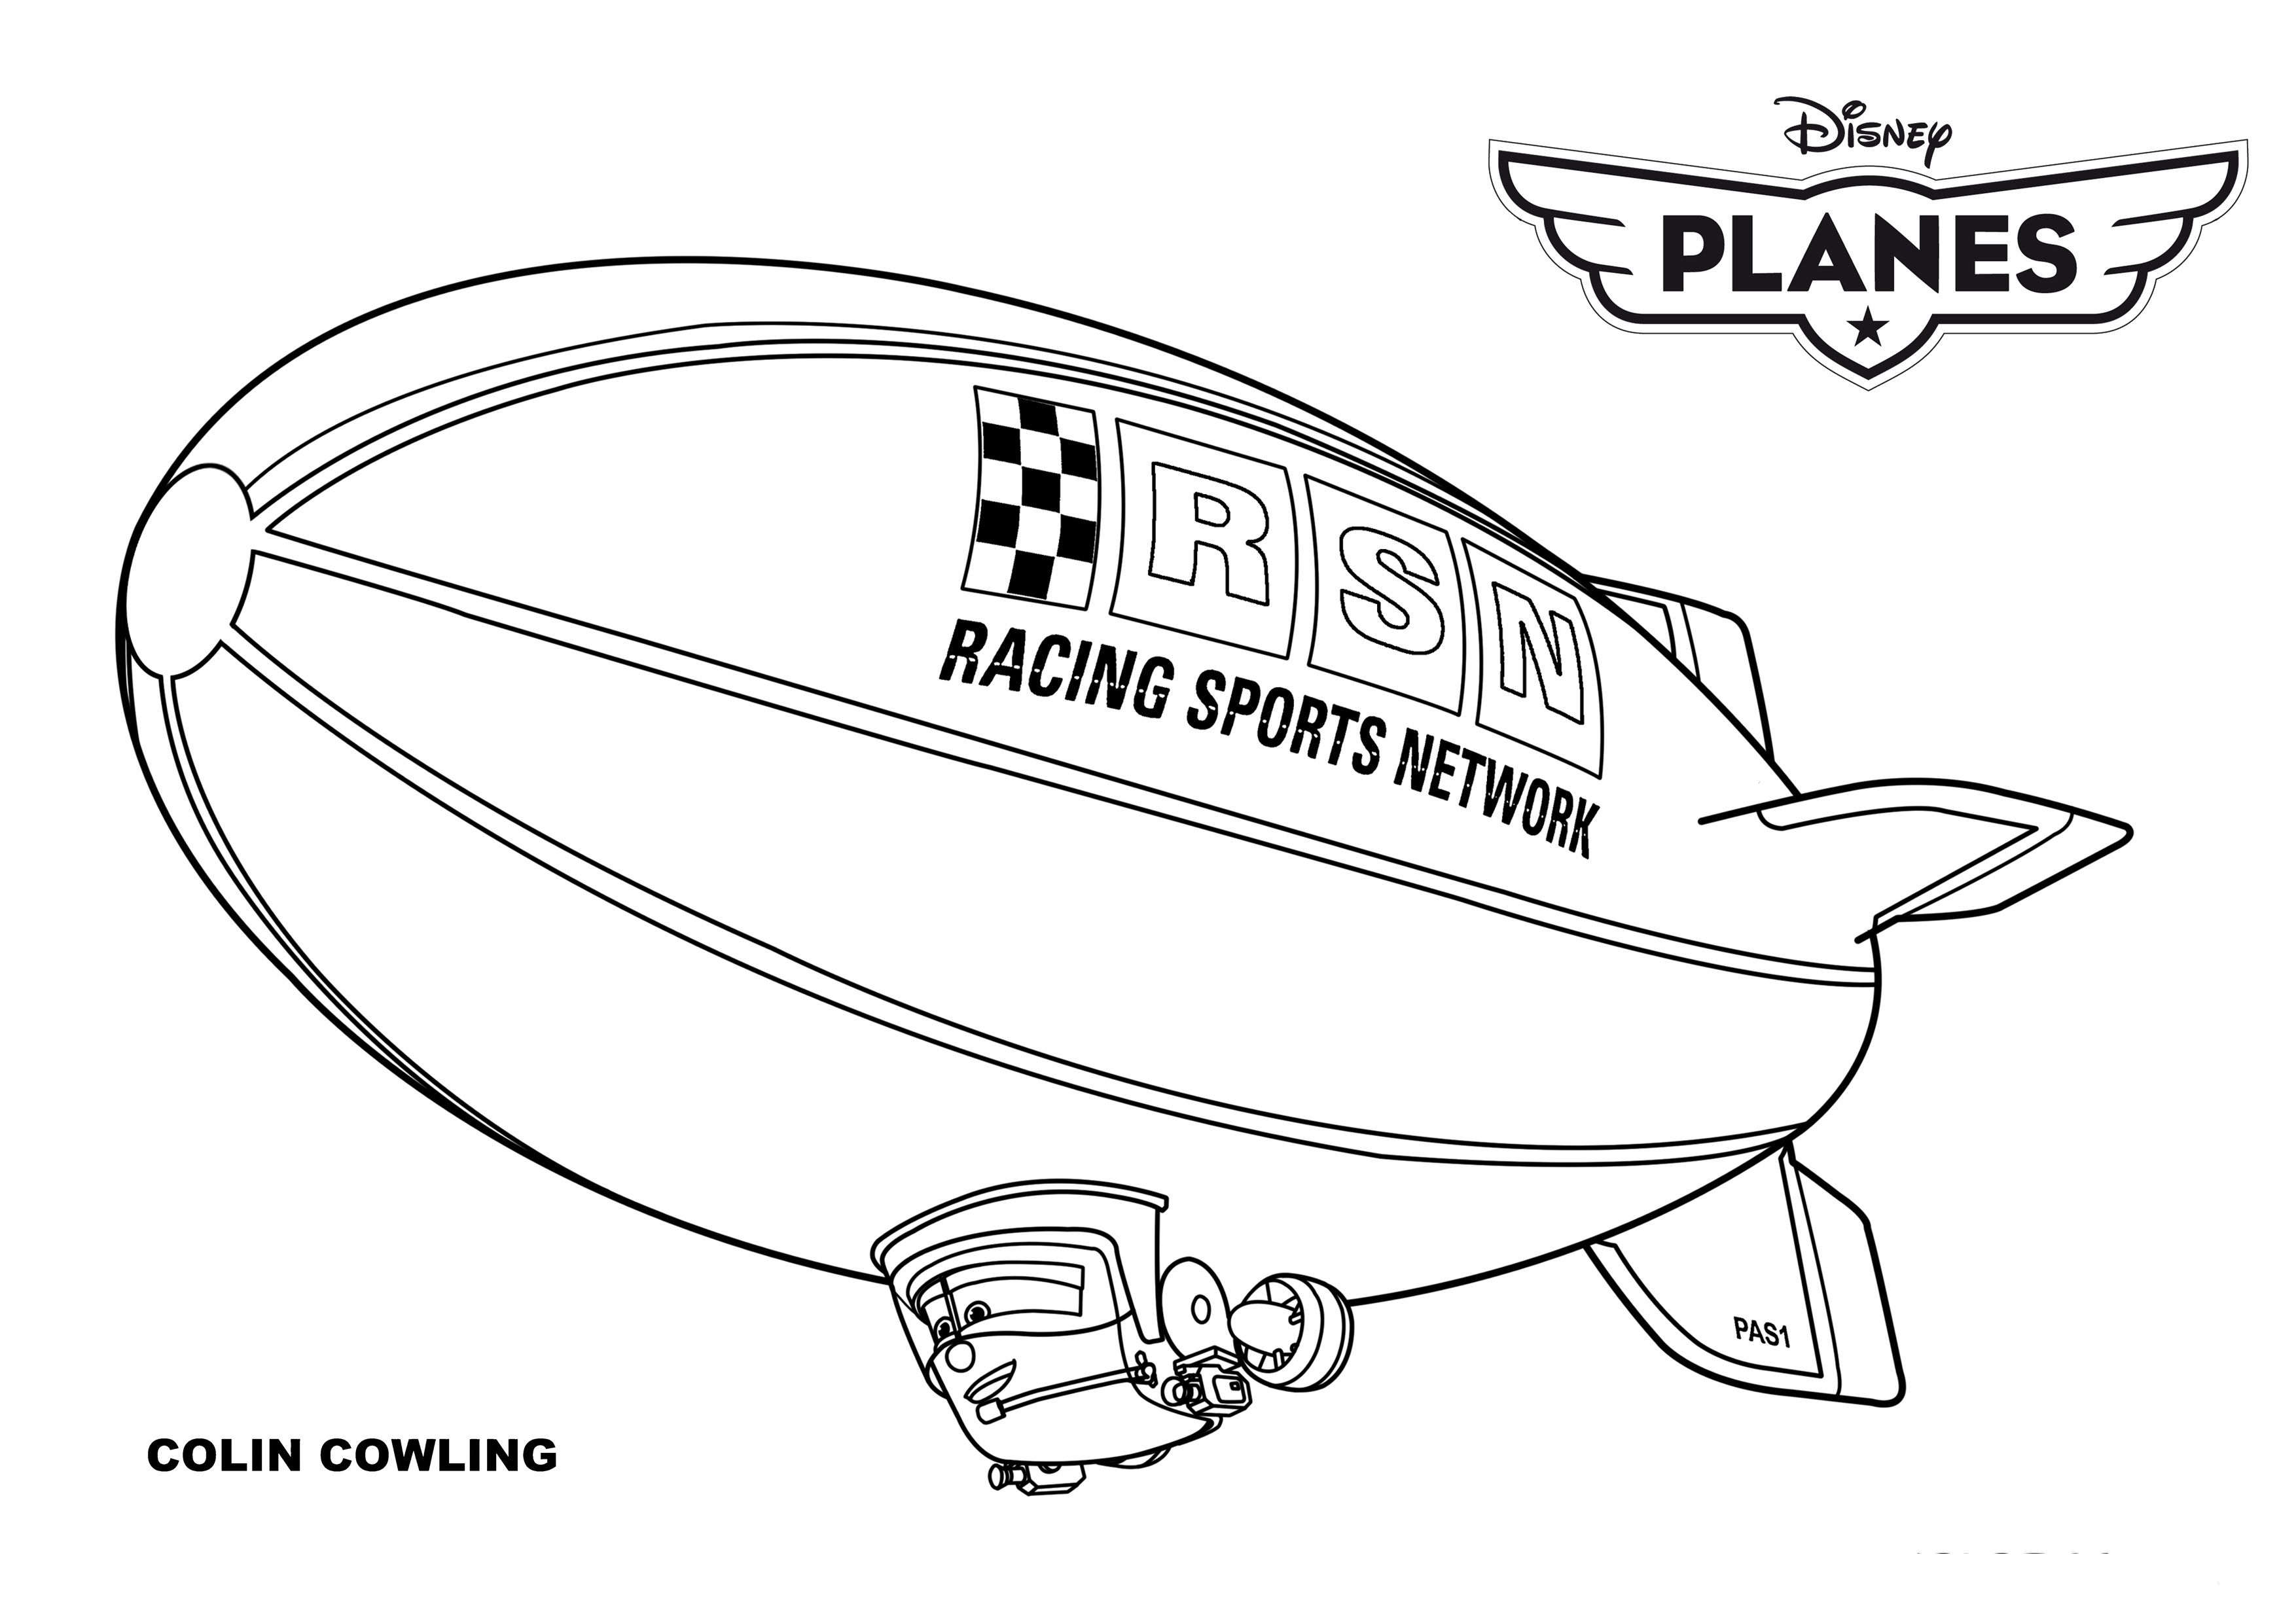 Exelent Coloriage Planes 2 Cabbie Ensign - Coloring Pages Of Animals ...